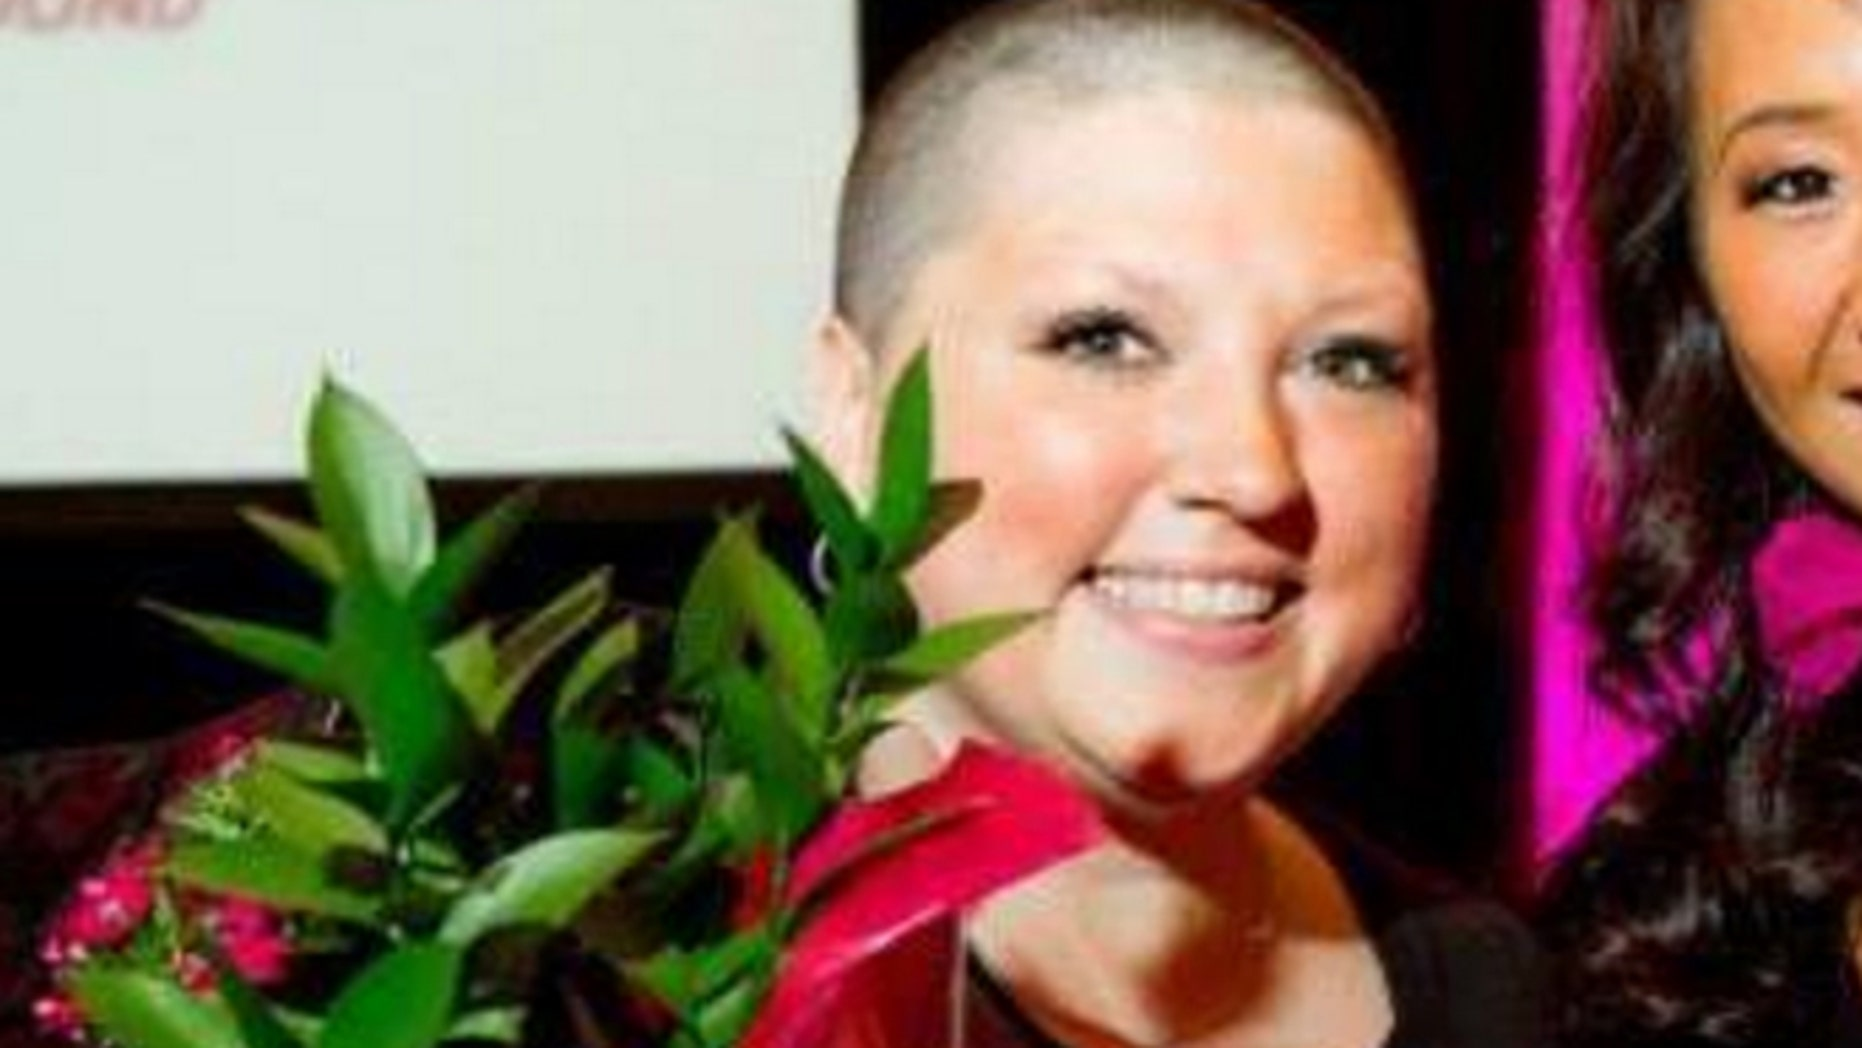 Tracy Dart is accused of faking cancer.